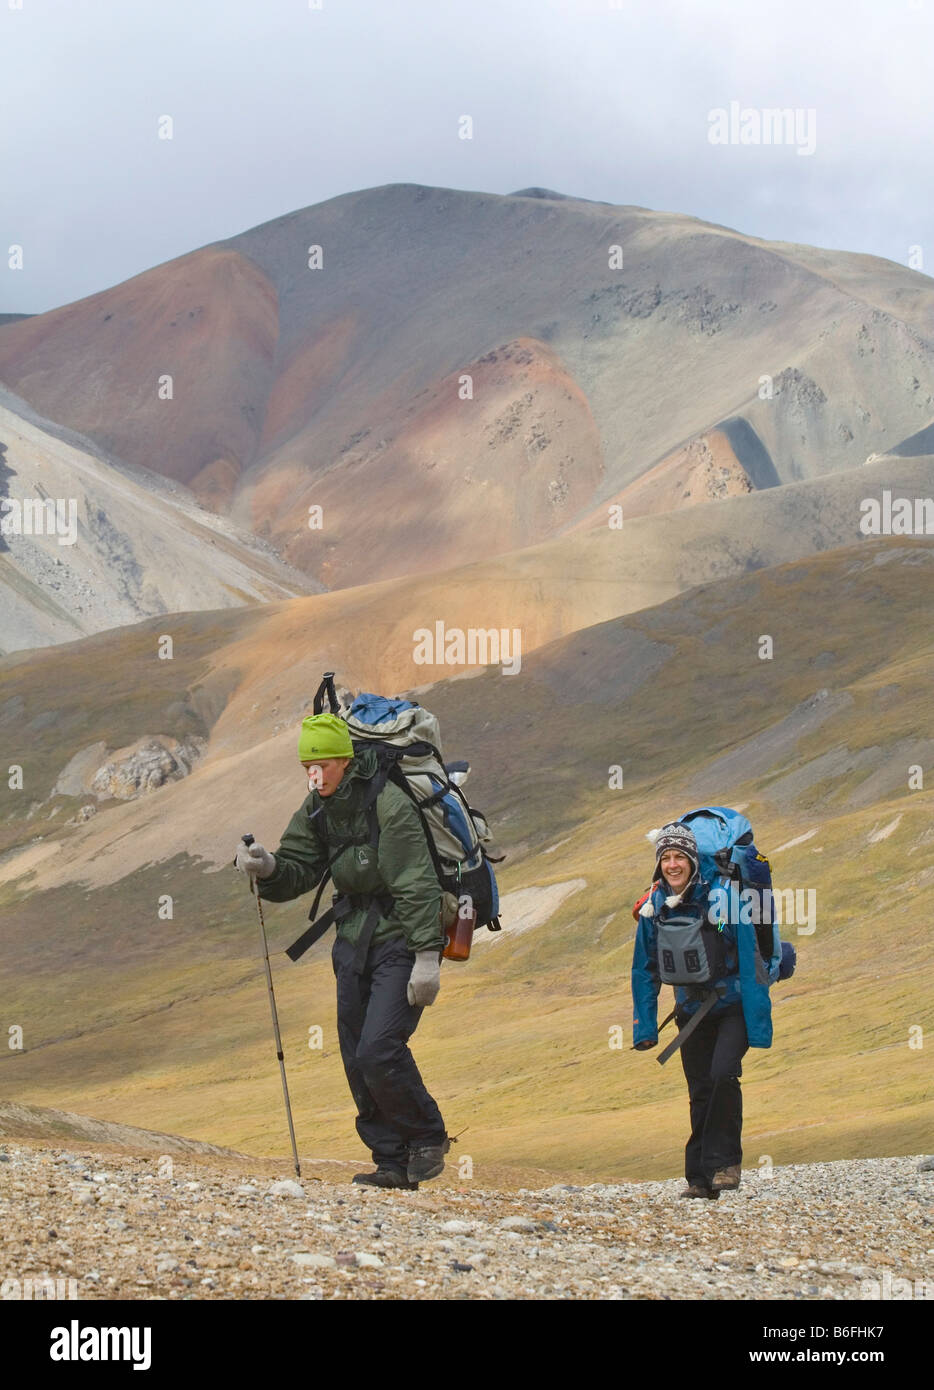 Two hikers, backpackers, women, ascending Hoge Pass, alpine tundra, Donjek Route, St. Elias Mountains, Kluane National - Stock Image